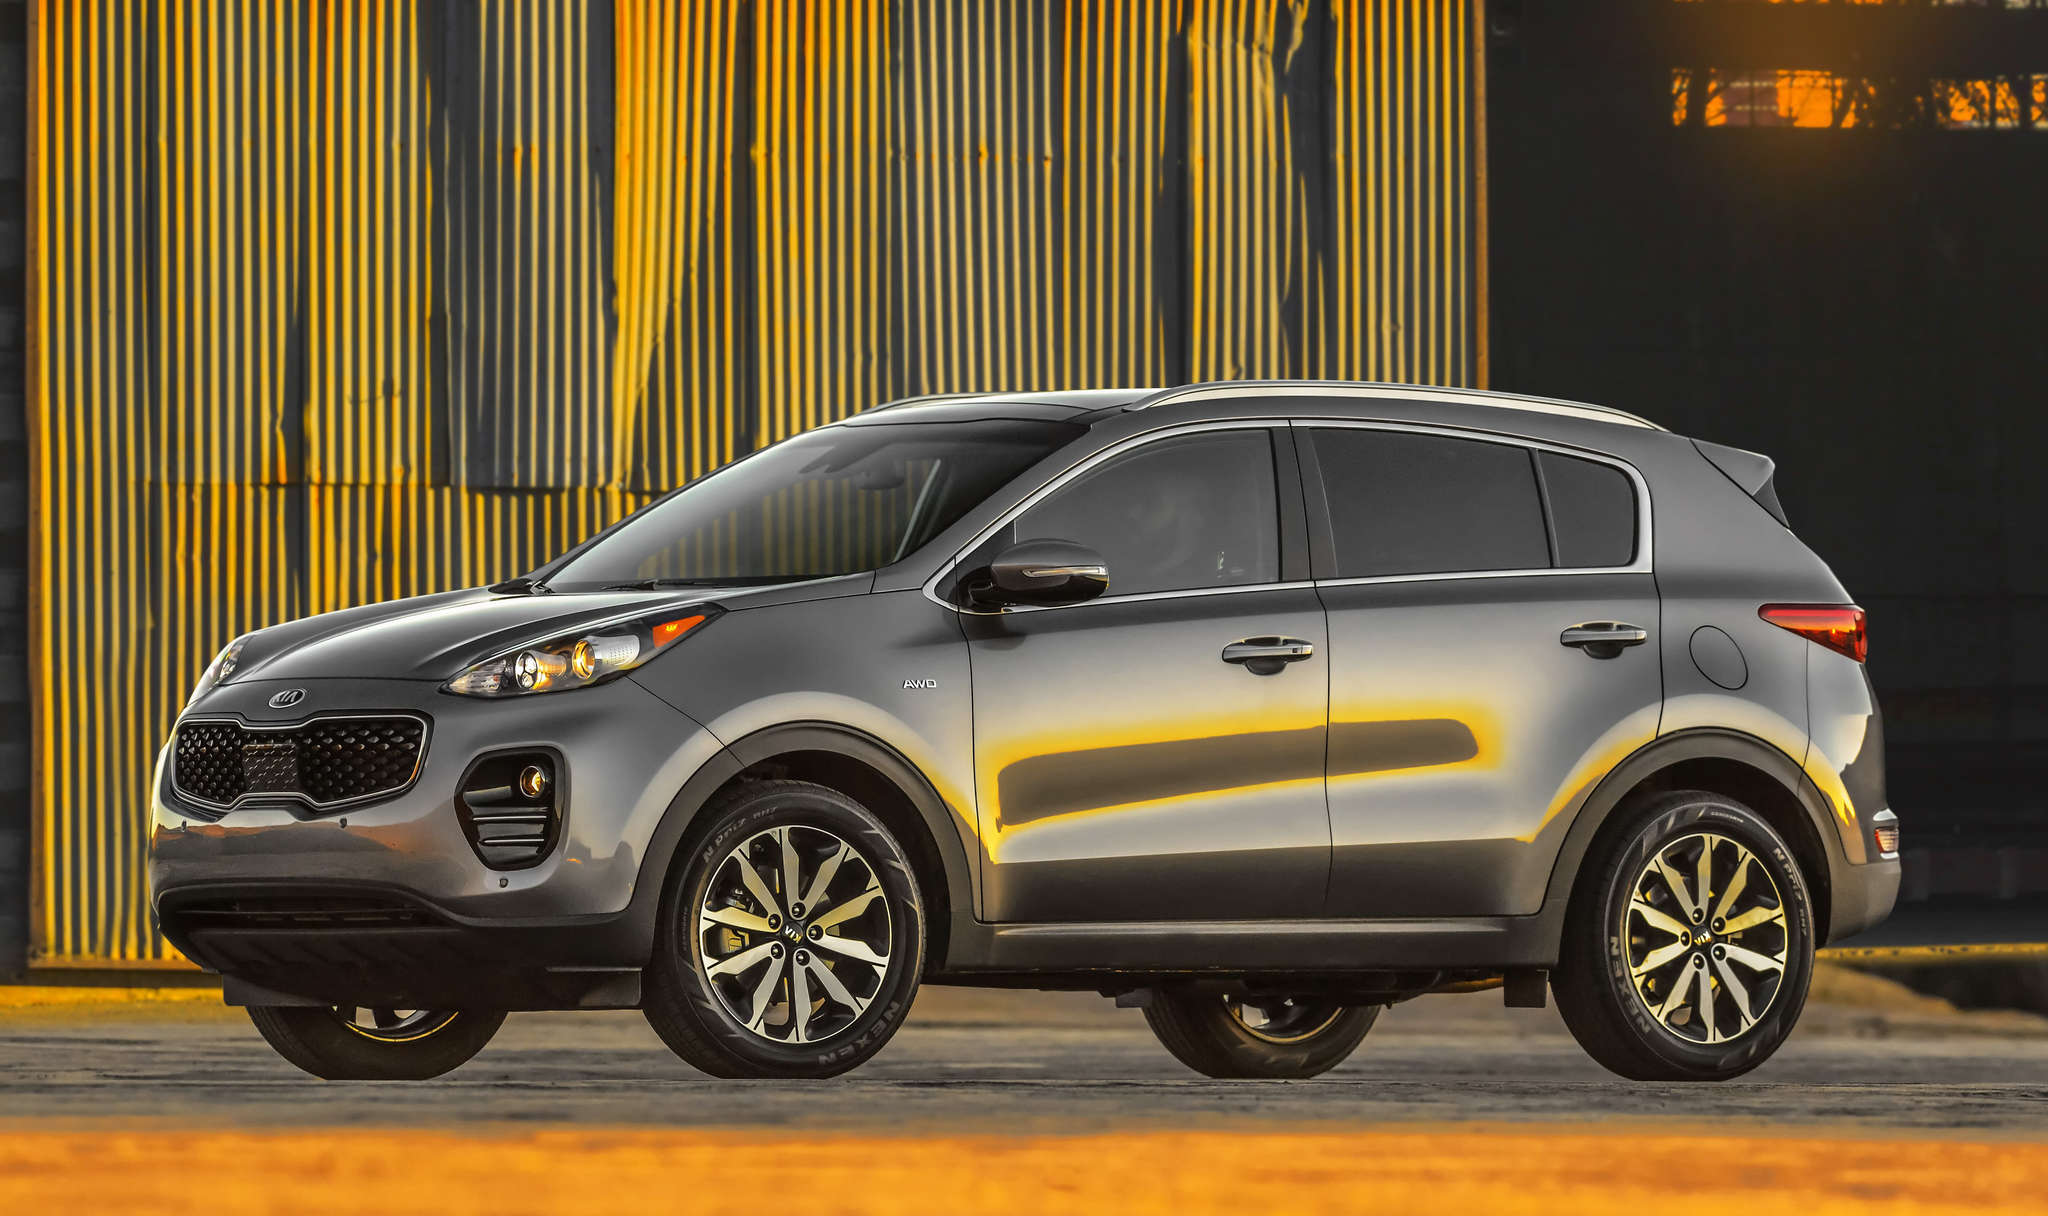 The 2017 Kia Sportage has a new look and several upgrades, including a stiffer structure.